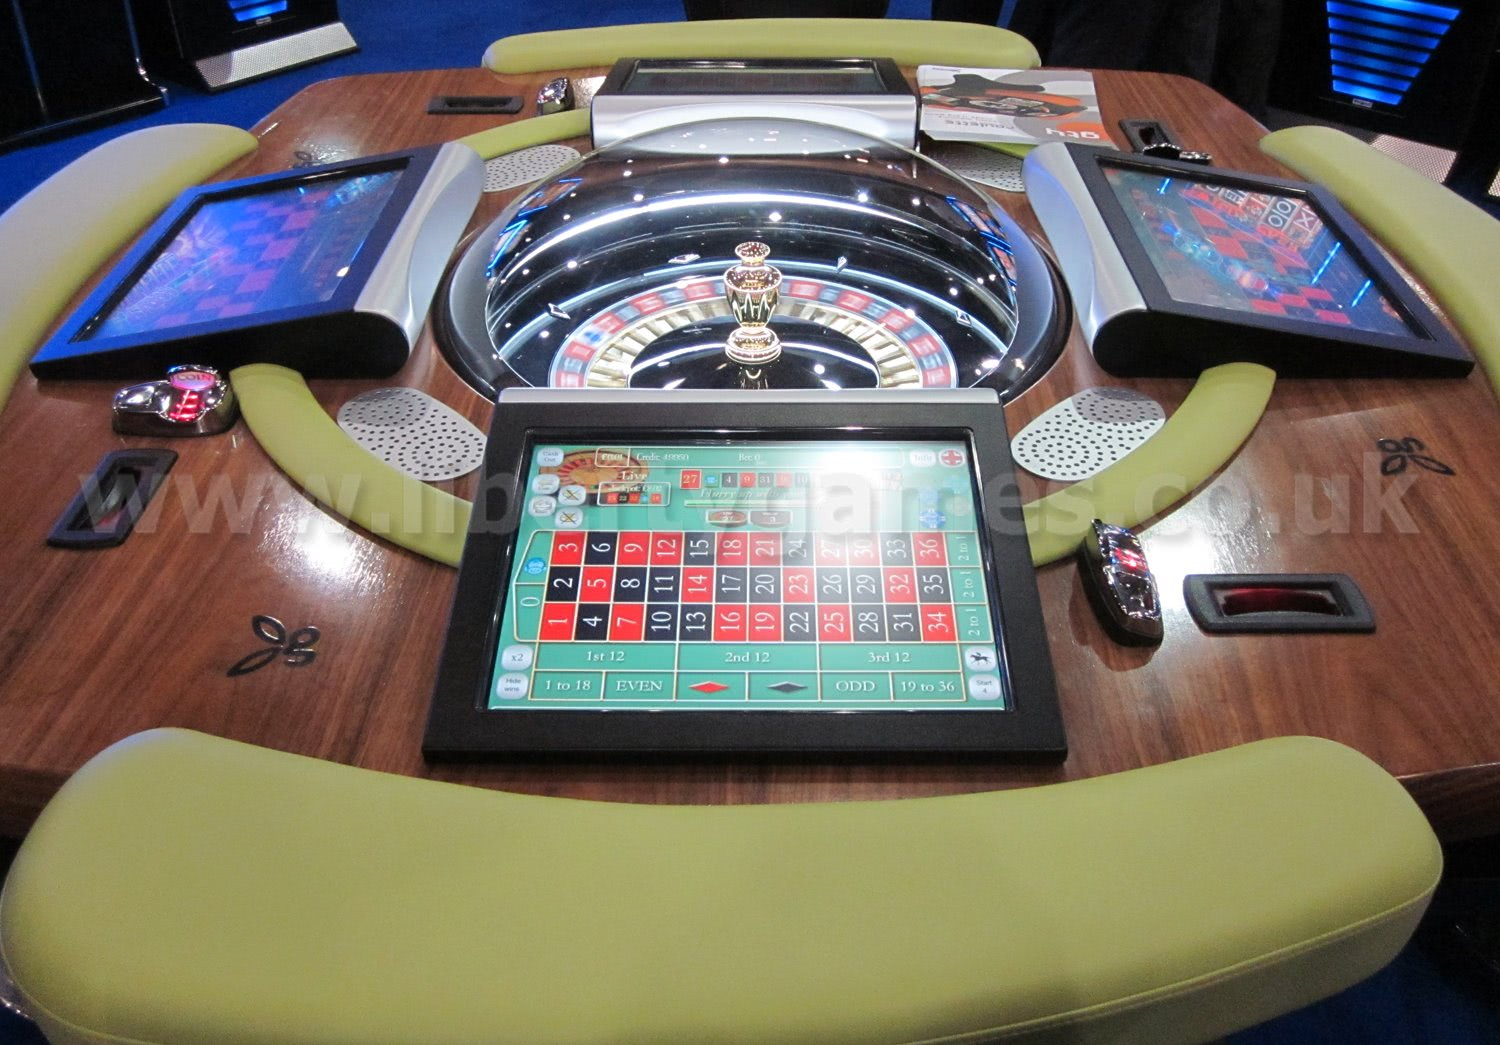 Play Pinball Roulette Arcade Game Online at Casino.com South Africa